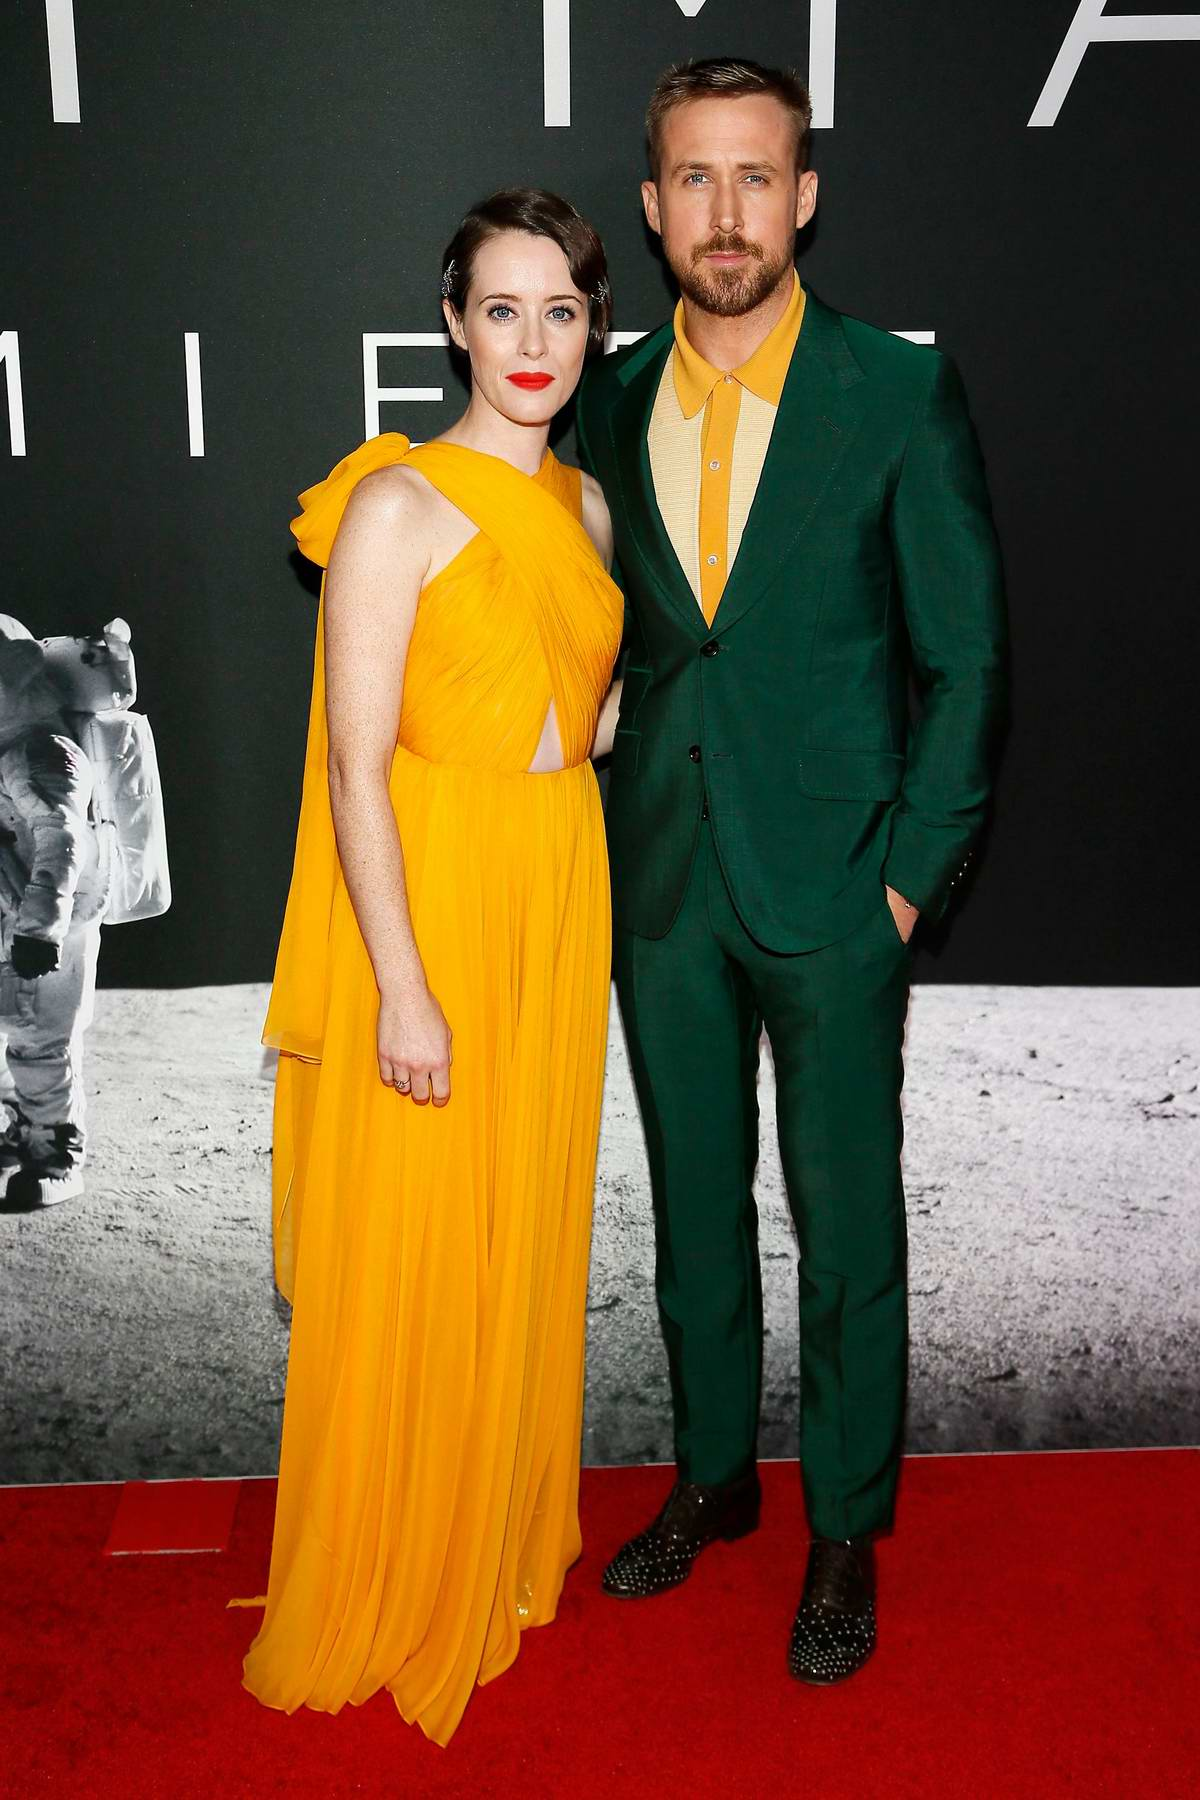 Claire Foy and Ryan Gosling attends 'First Man' Premiere at the National Air and Space Museum in Washington D.C.